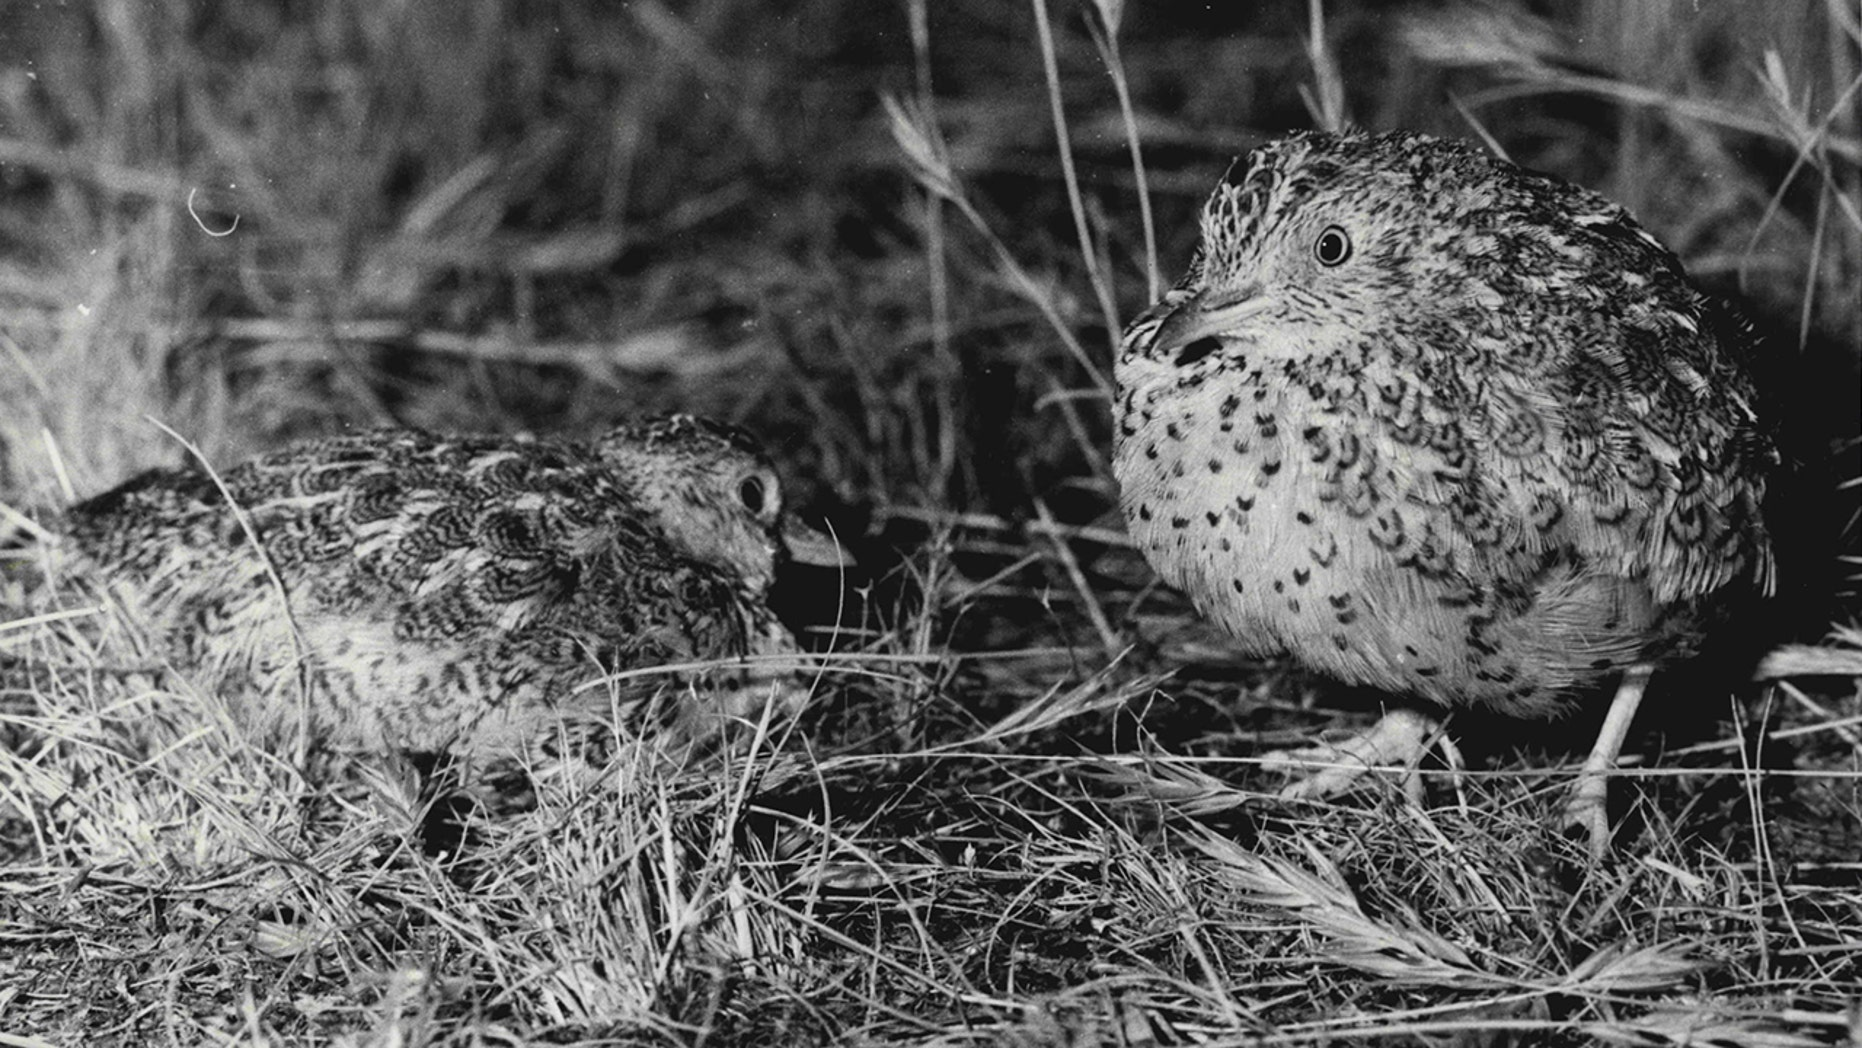 """File photo - John Nevinson on his property called """"The Ranch"""" between Hay and Deniliquin with the bird """"Plains-wanderer"""". January 17, 1985. (Photo by Susan Debra Windmiller/Fairfax Media via Getty Images)."""